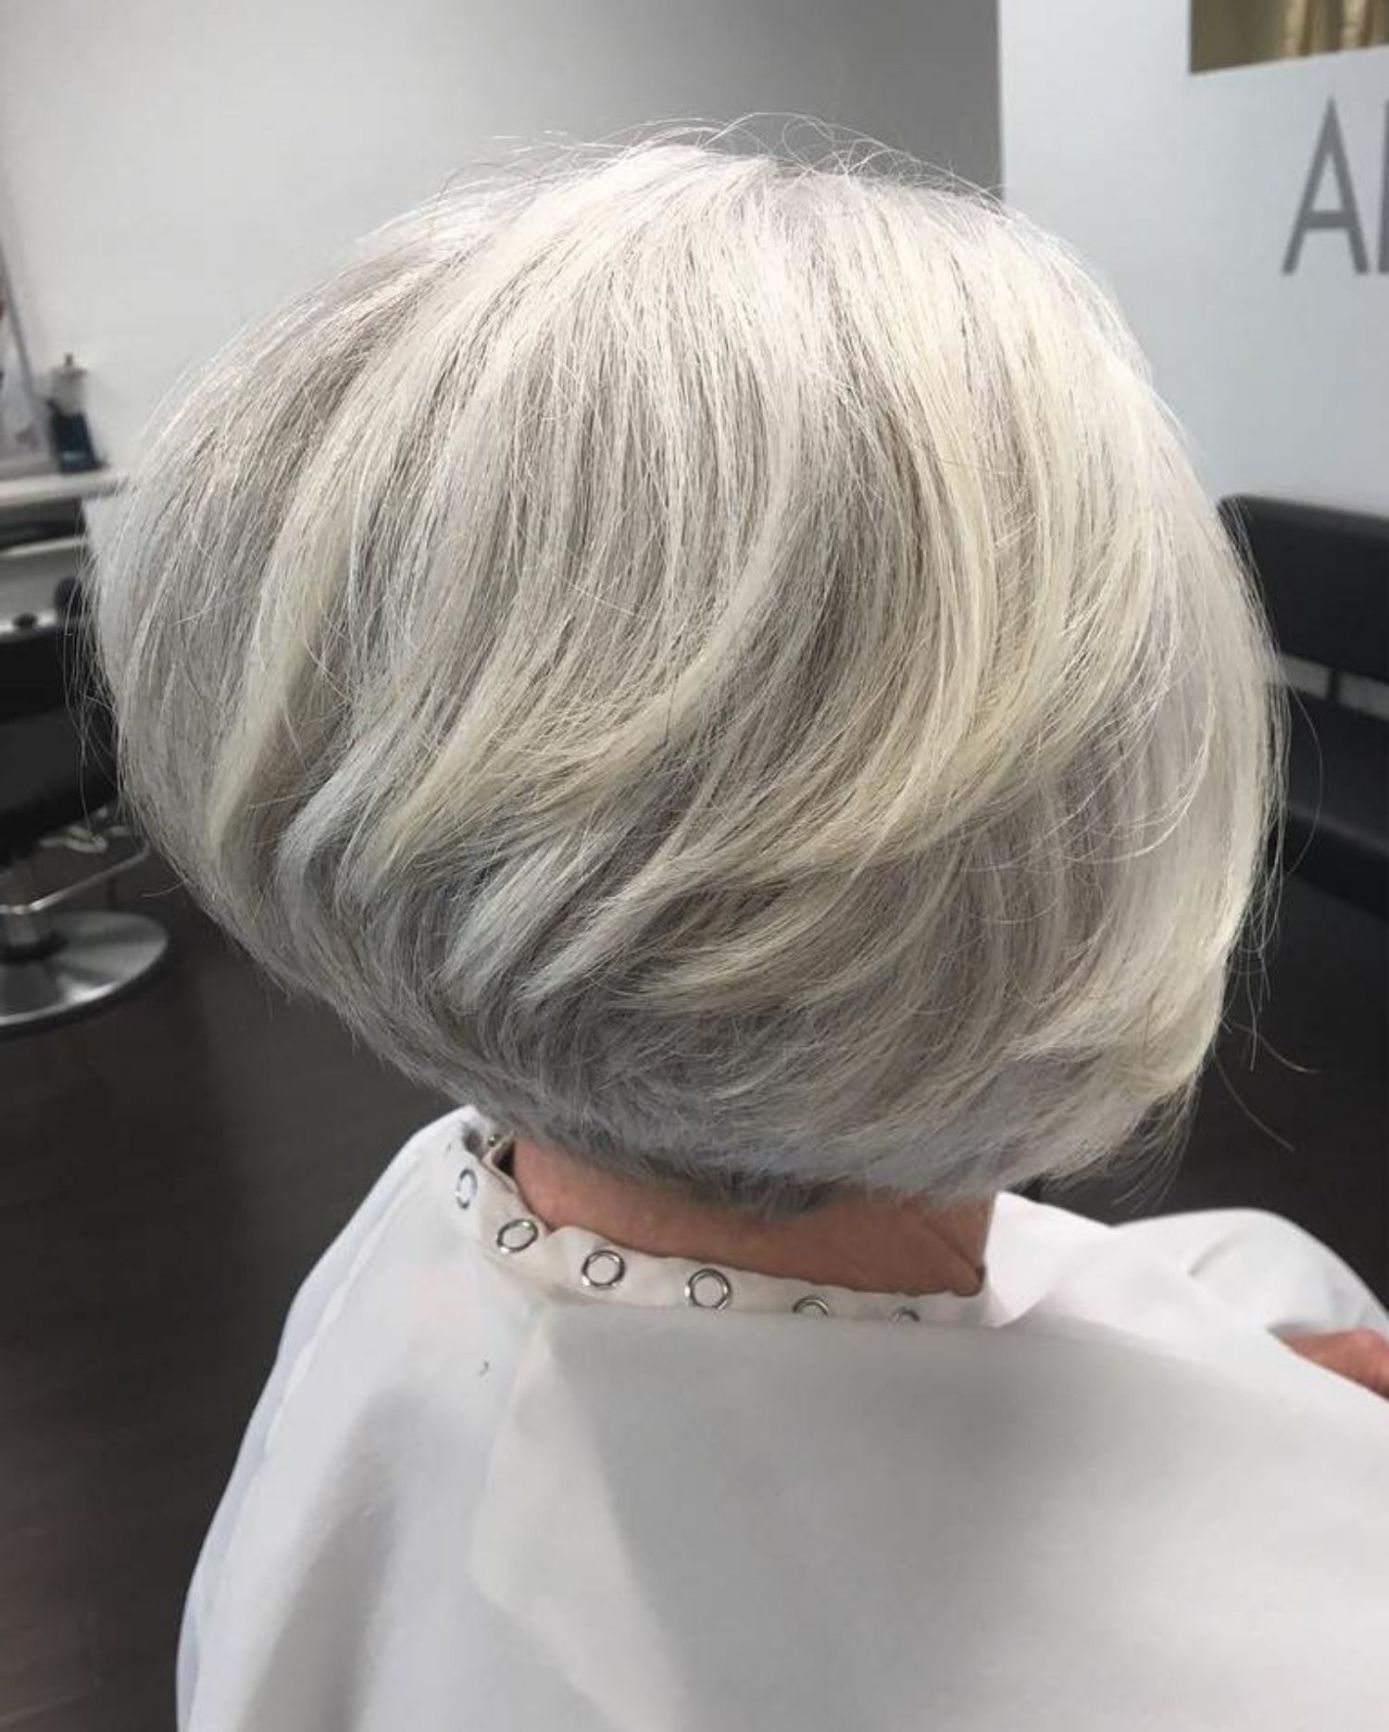 The Best Hairstyles And Haircuts For Women Over 70 Thick Hair Styles Cool Hairstyles Short Hair Styles